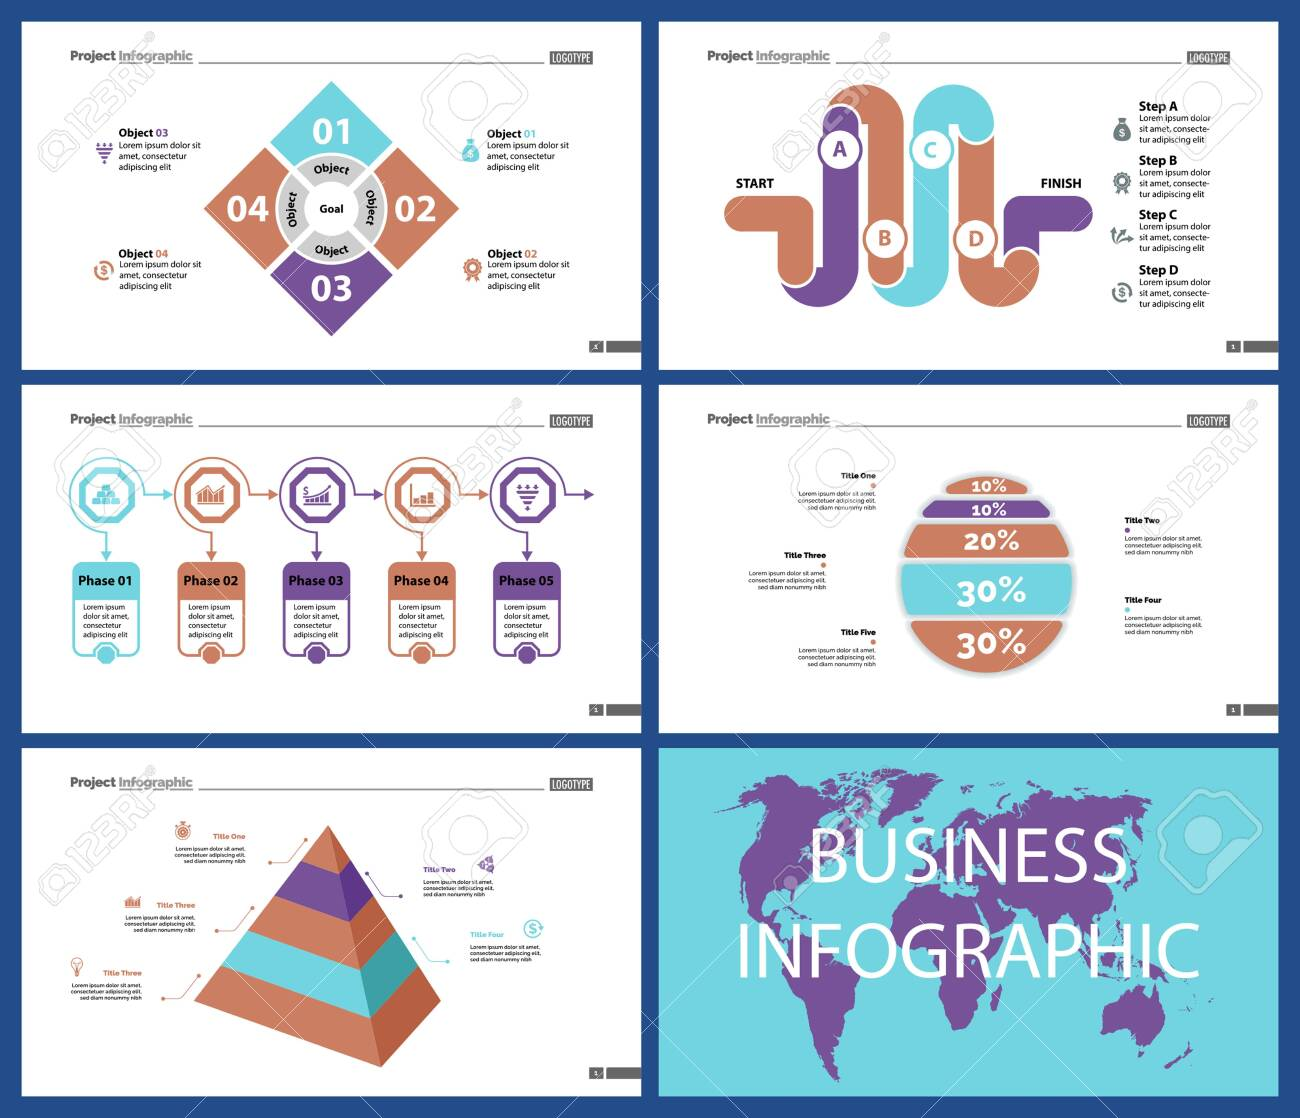 Business infographic creative design set can be used for annual report, web design, workflow layout. Workflow concept. Option, venn, cycle, donut charts, bar graph, flowchart - 128516172